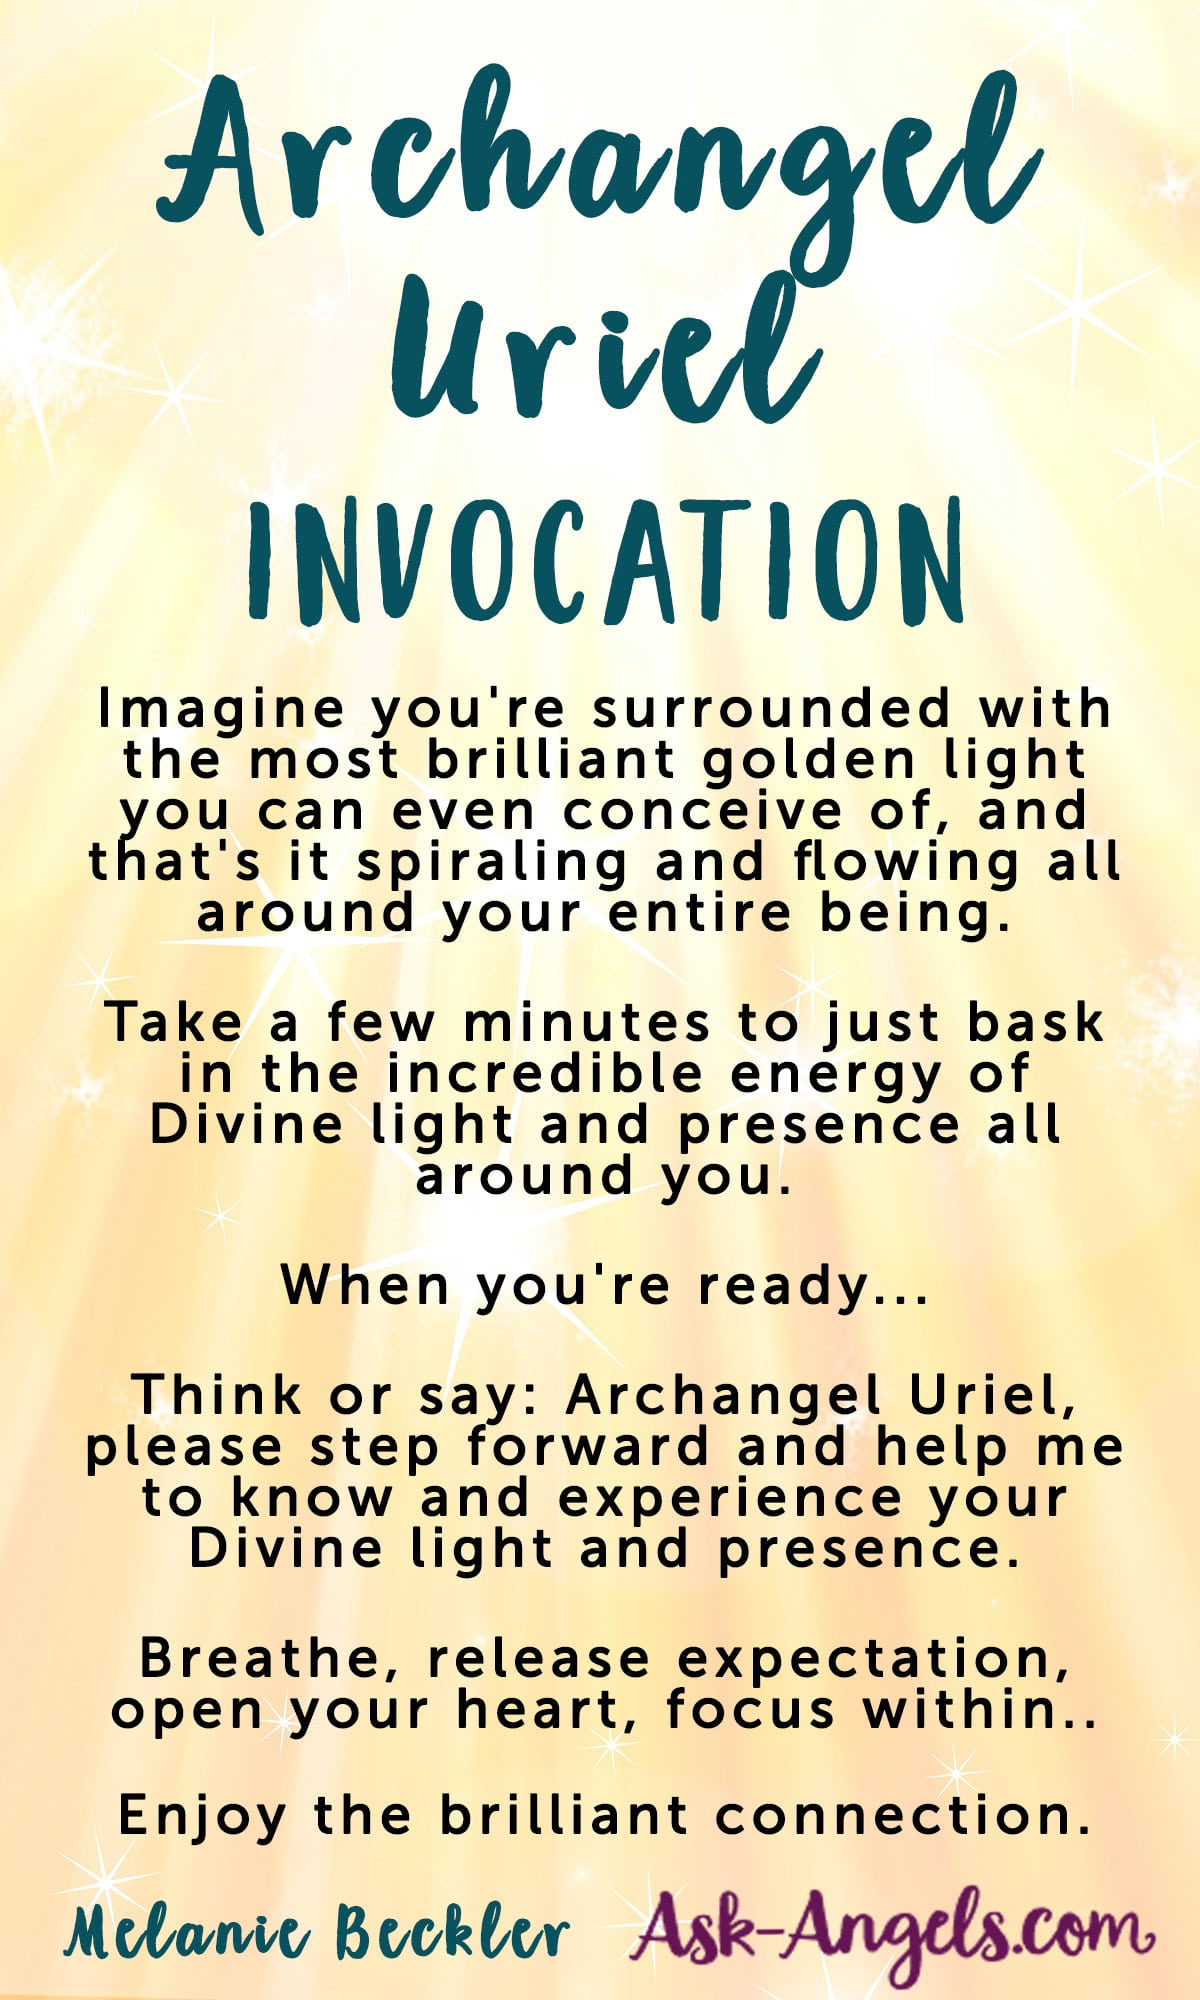 Archangel Uriel Invocation